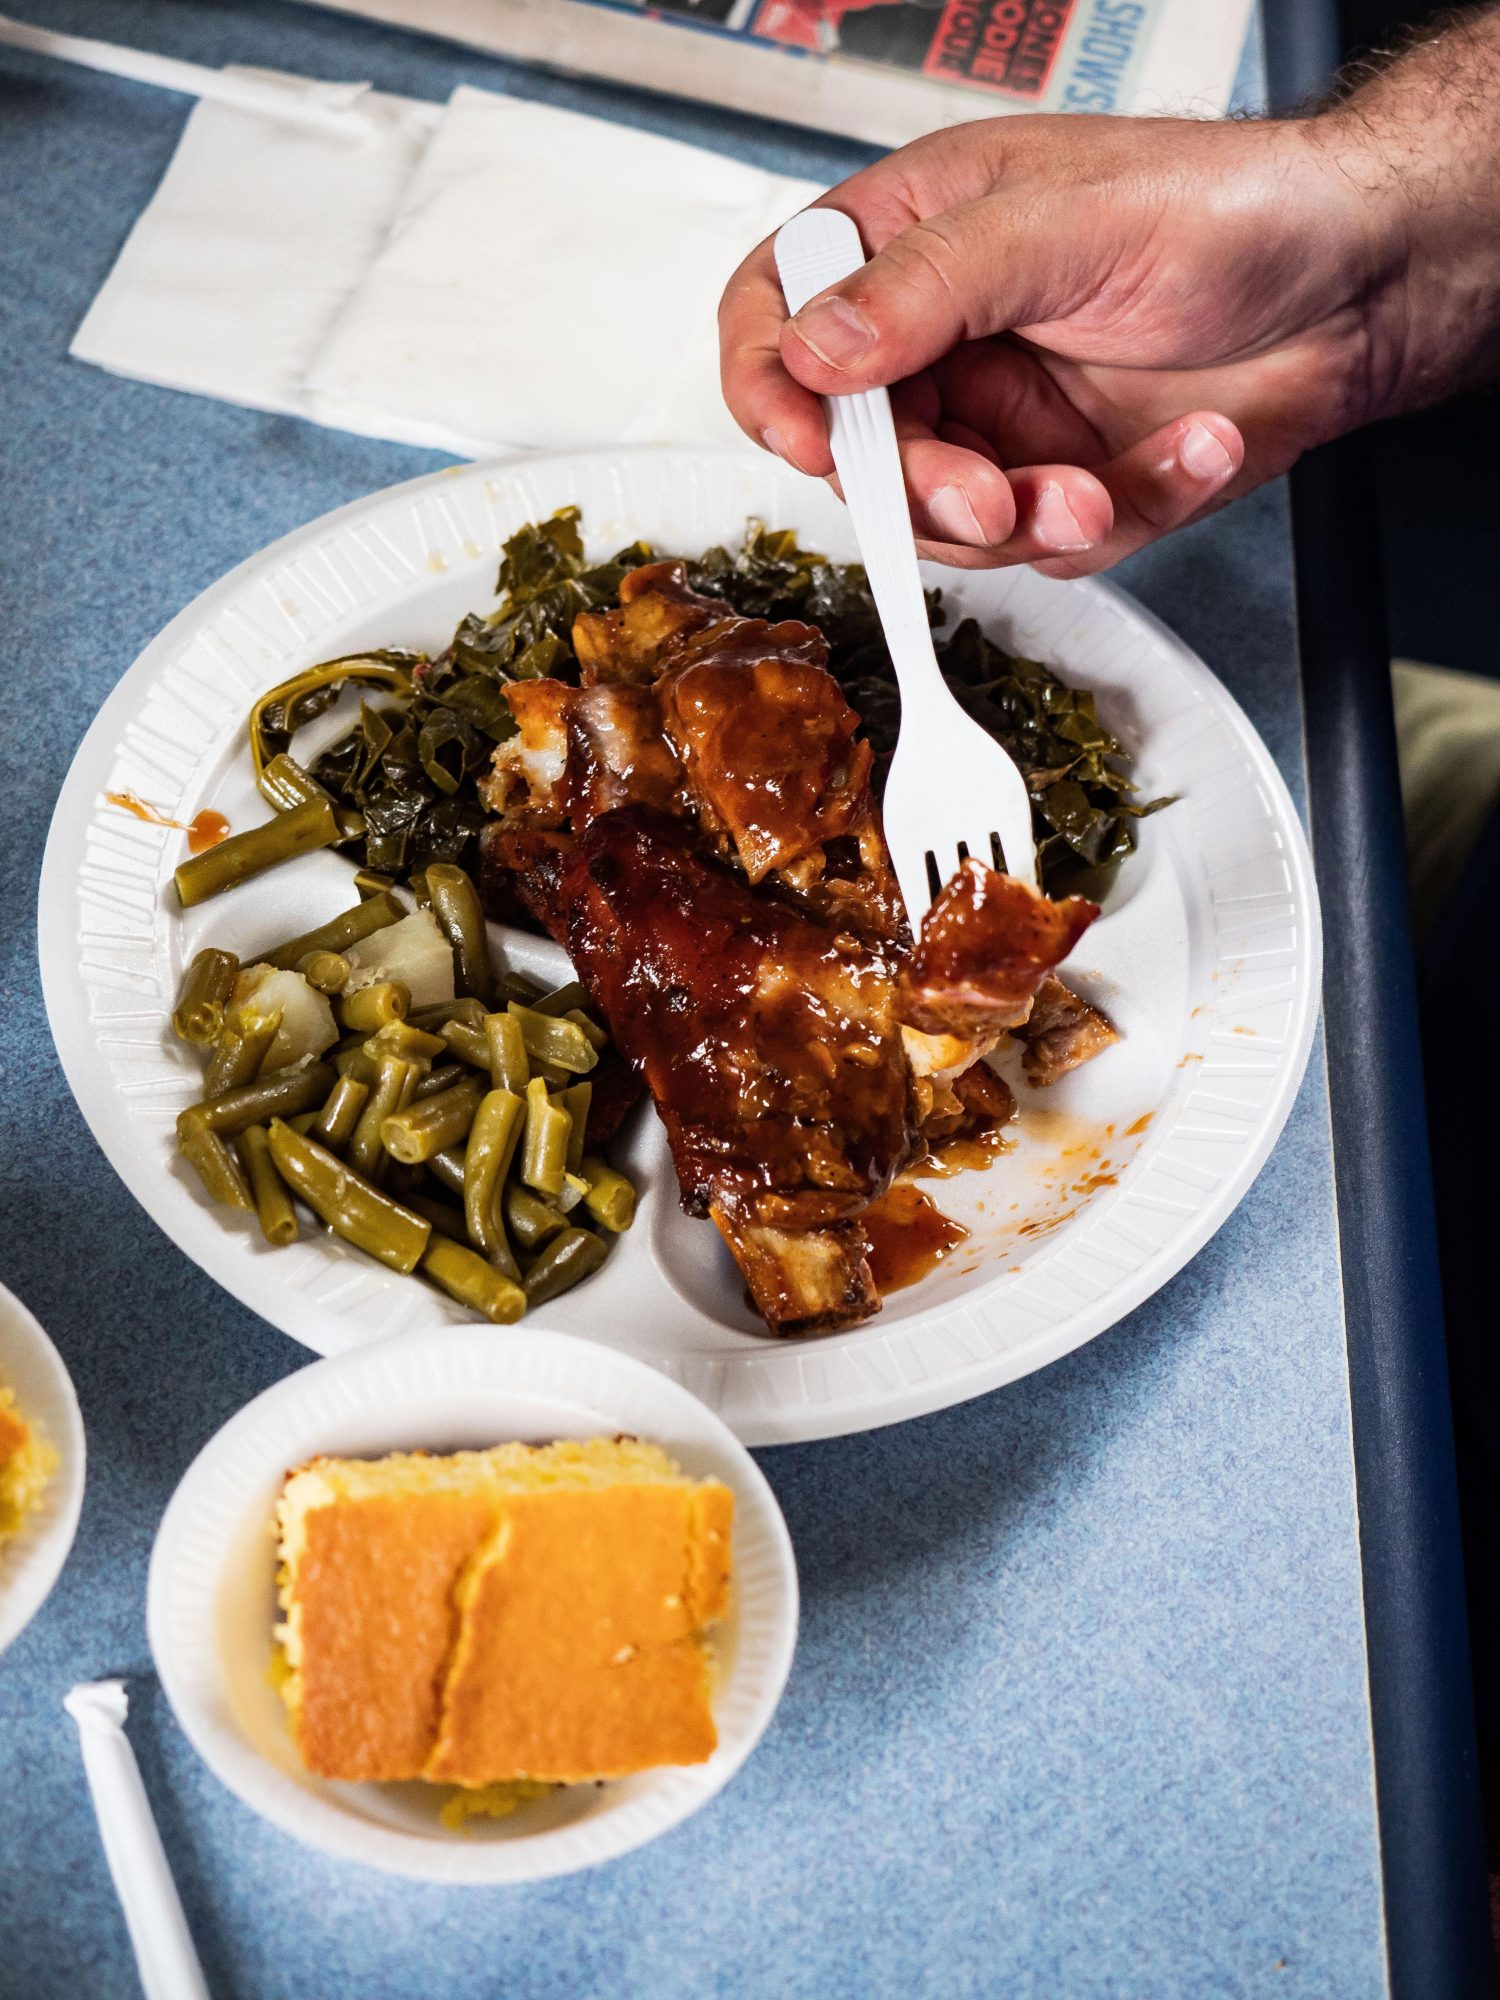 Bertha's ribs, collards, green beans, and cornbread